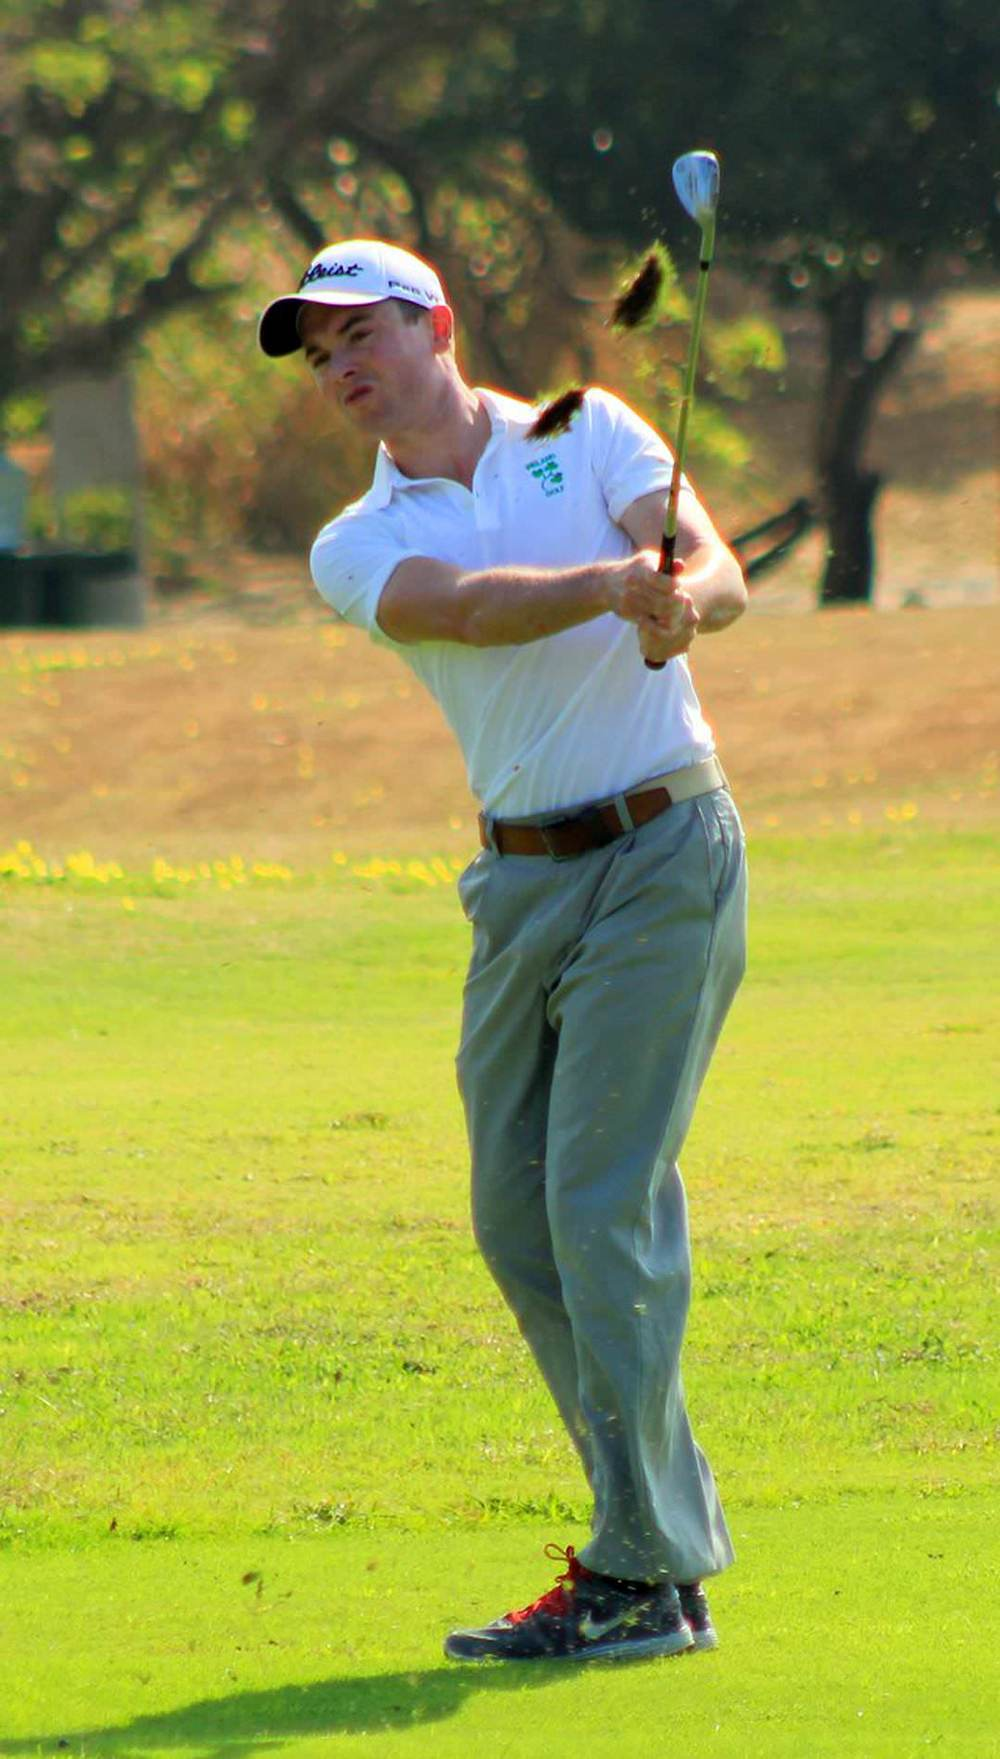 Stephen Healy in action in Colombia. Picture via  federacioncolombianadegolf.com